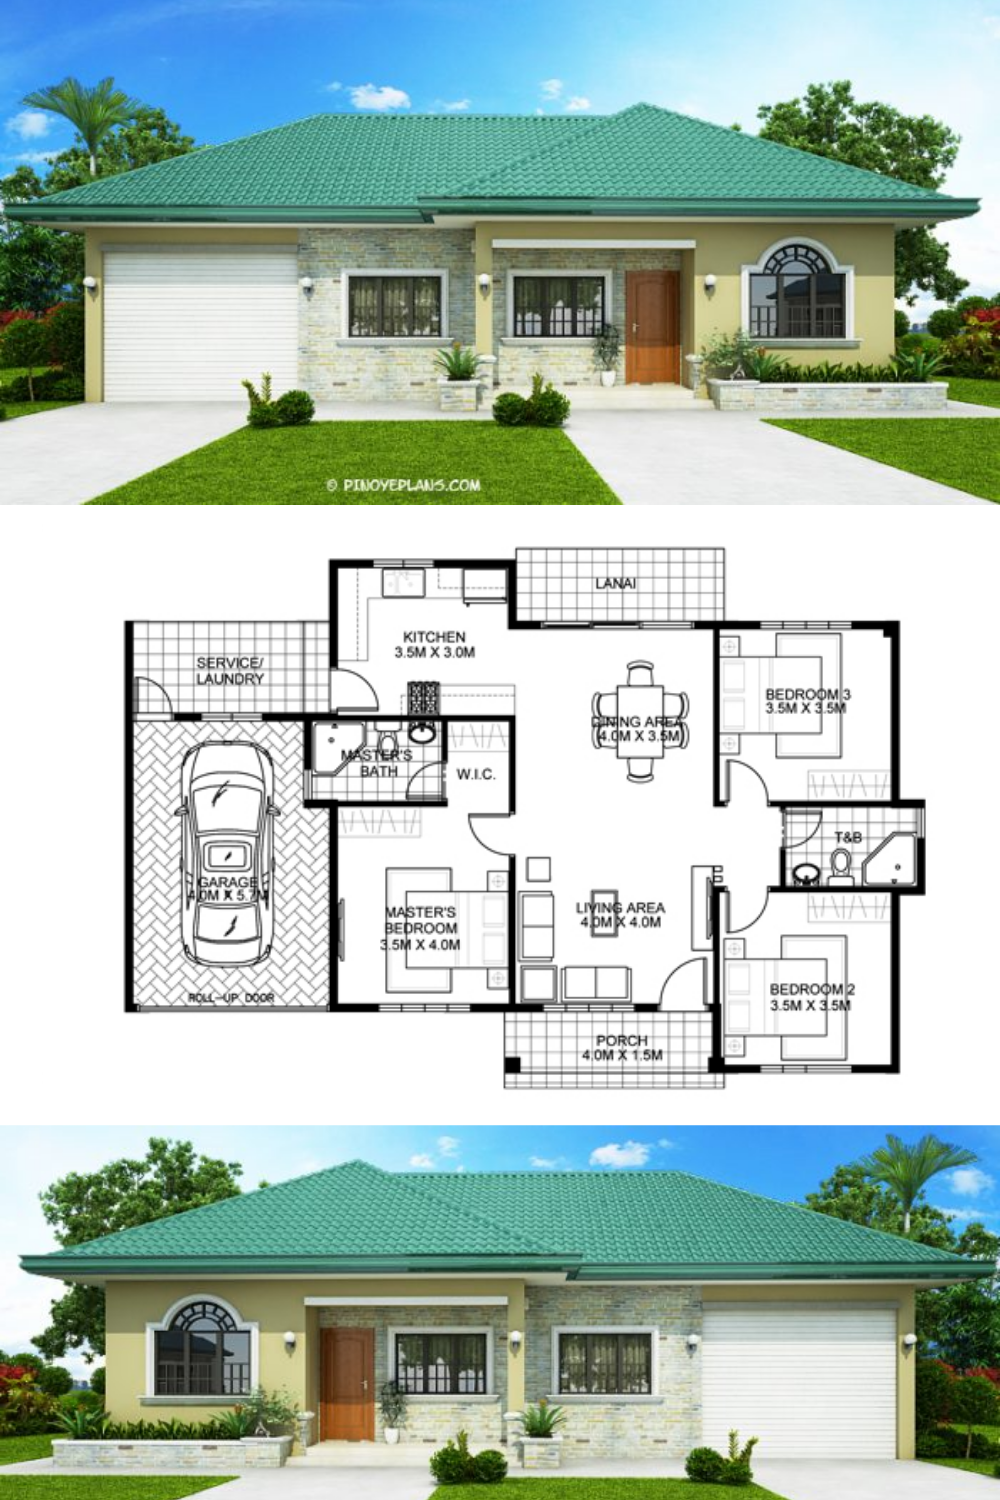 One Storey Bungalow House With 3 Bedrooms Pinoy Eplans Affordable House Plans House Plan Gallery Small Modern House Plans